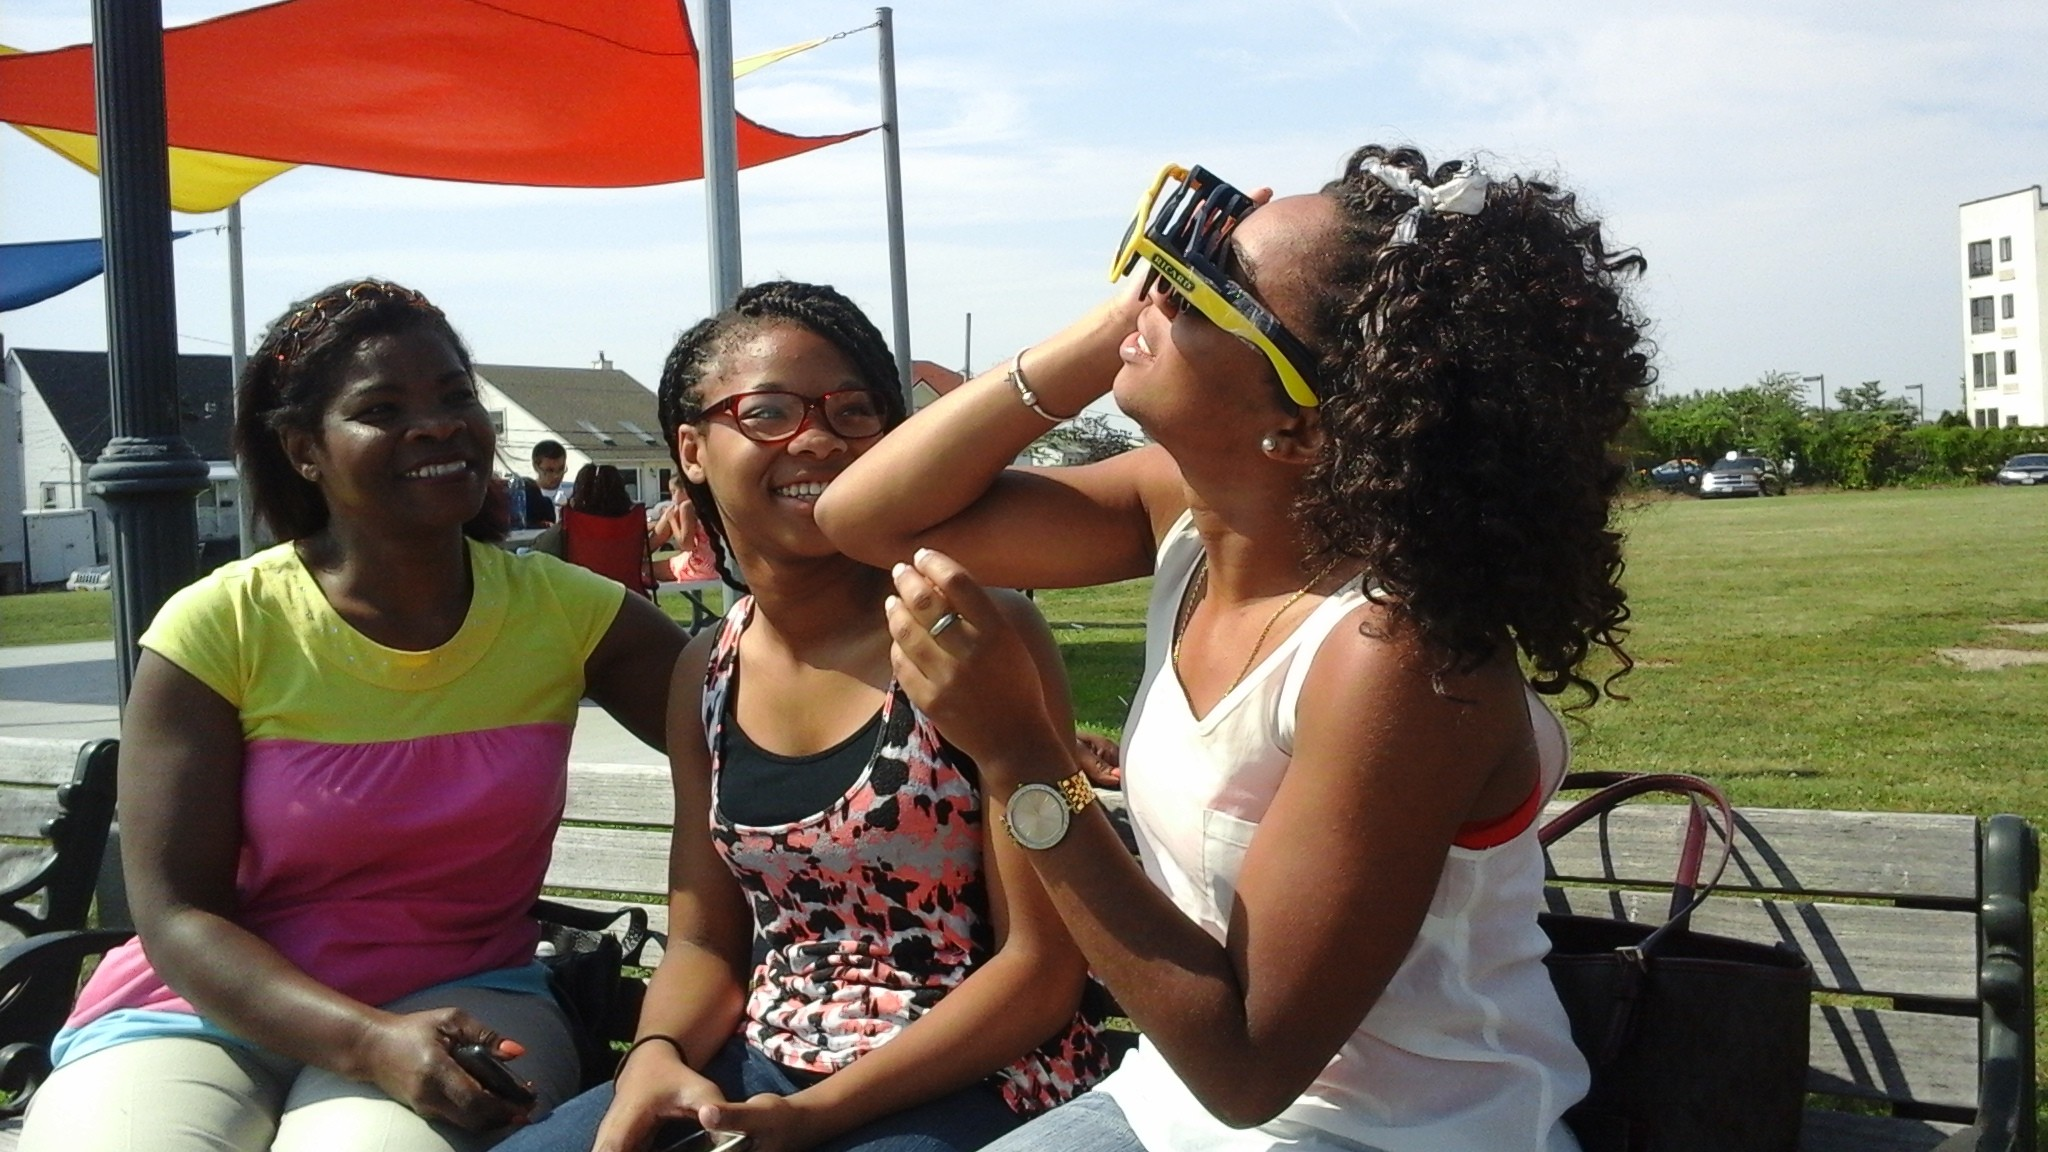 Roosevelt residents Roslind, Amelia and Marian Juste observed the eclipse from a bench in Seabreeze Park.